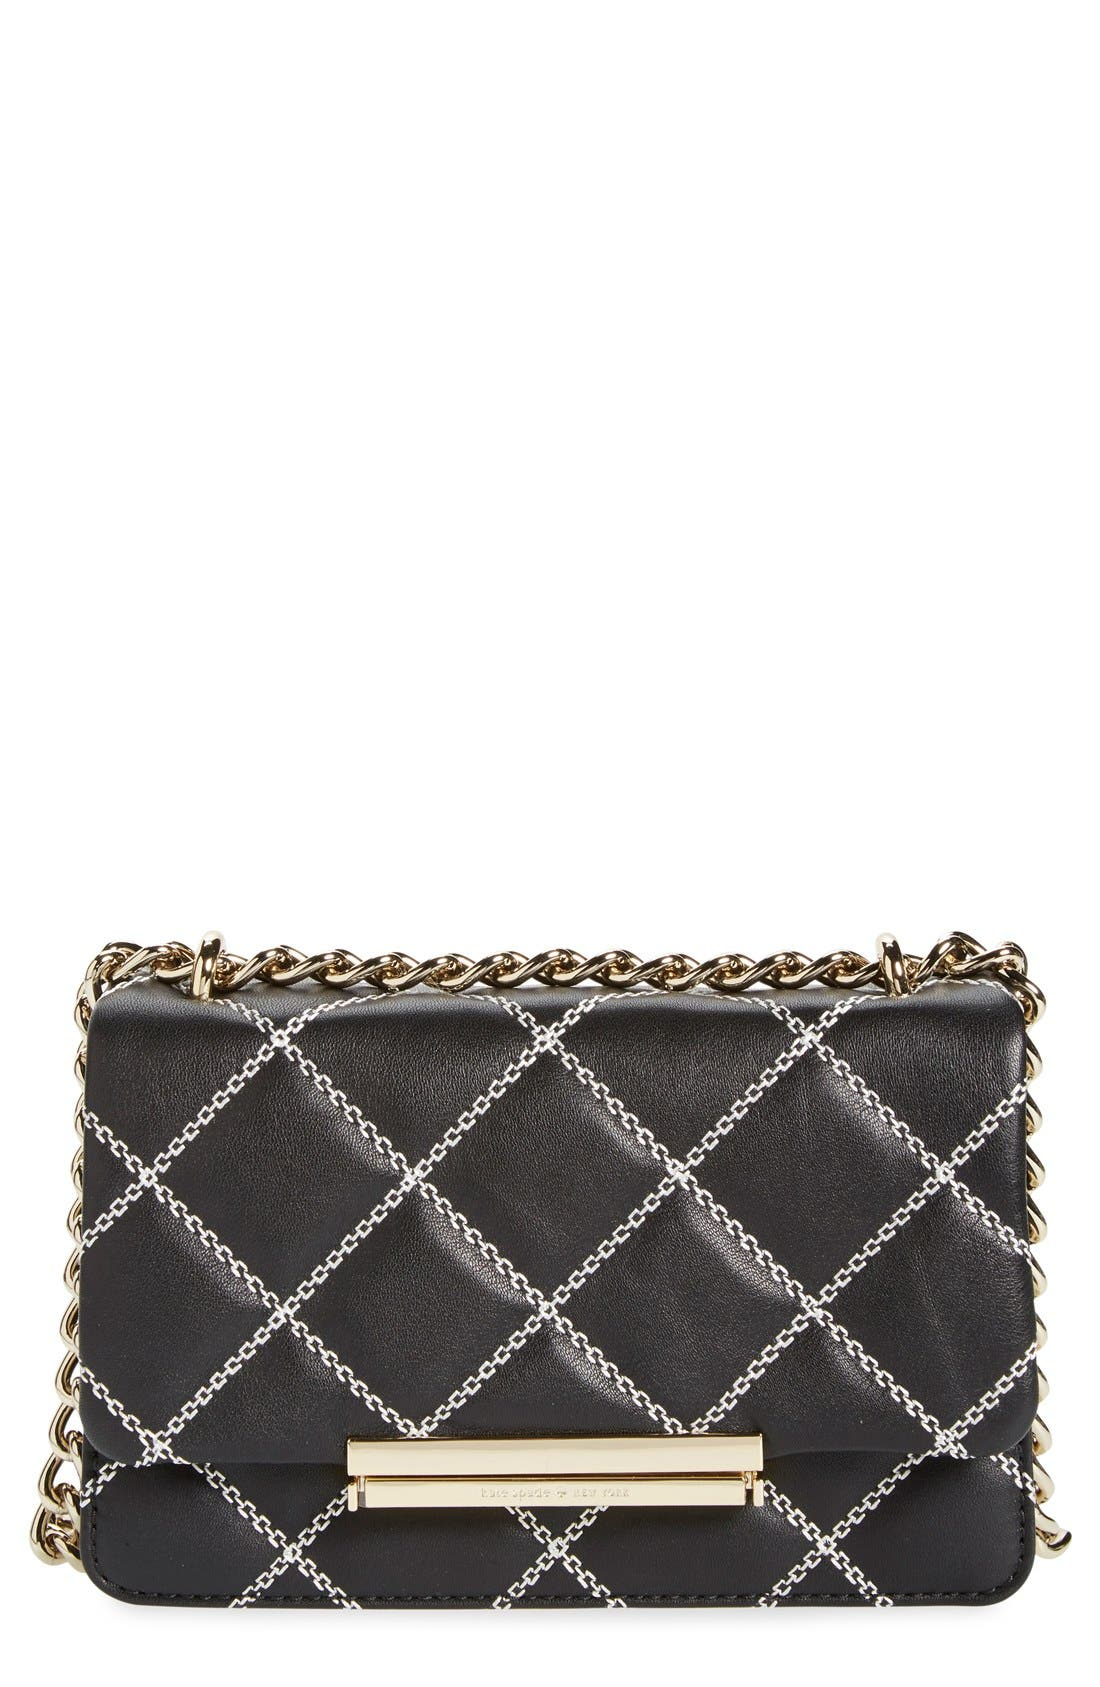 Main Image - kate spade new york 'emerson place - mini lawren' quilted leather crossbody bag